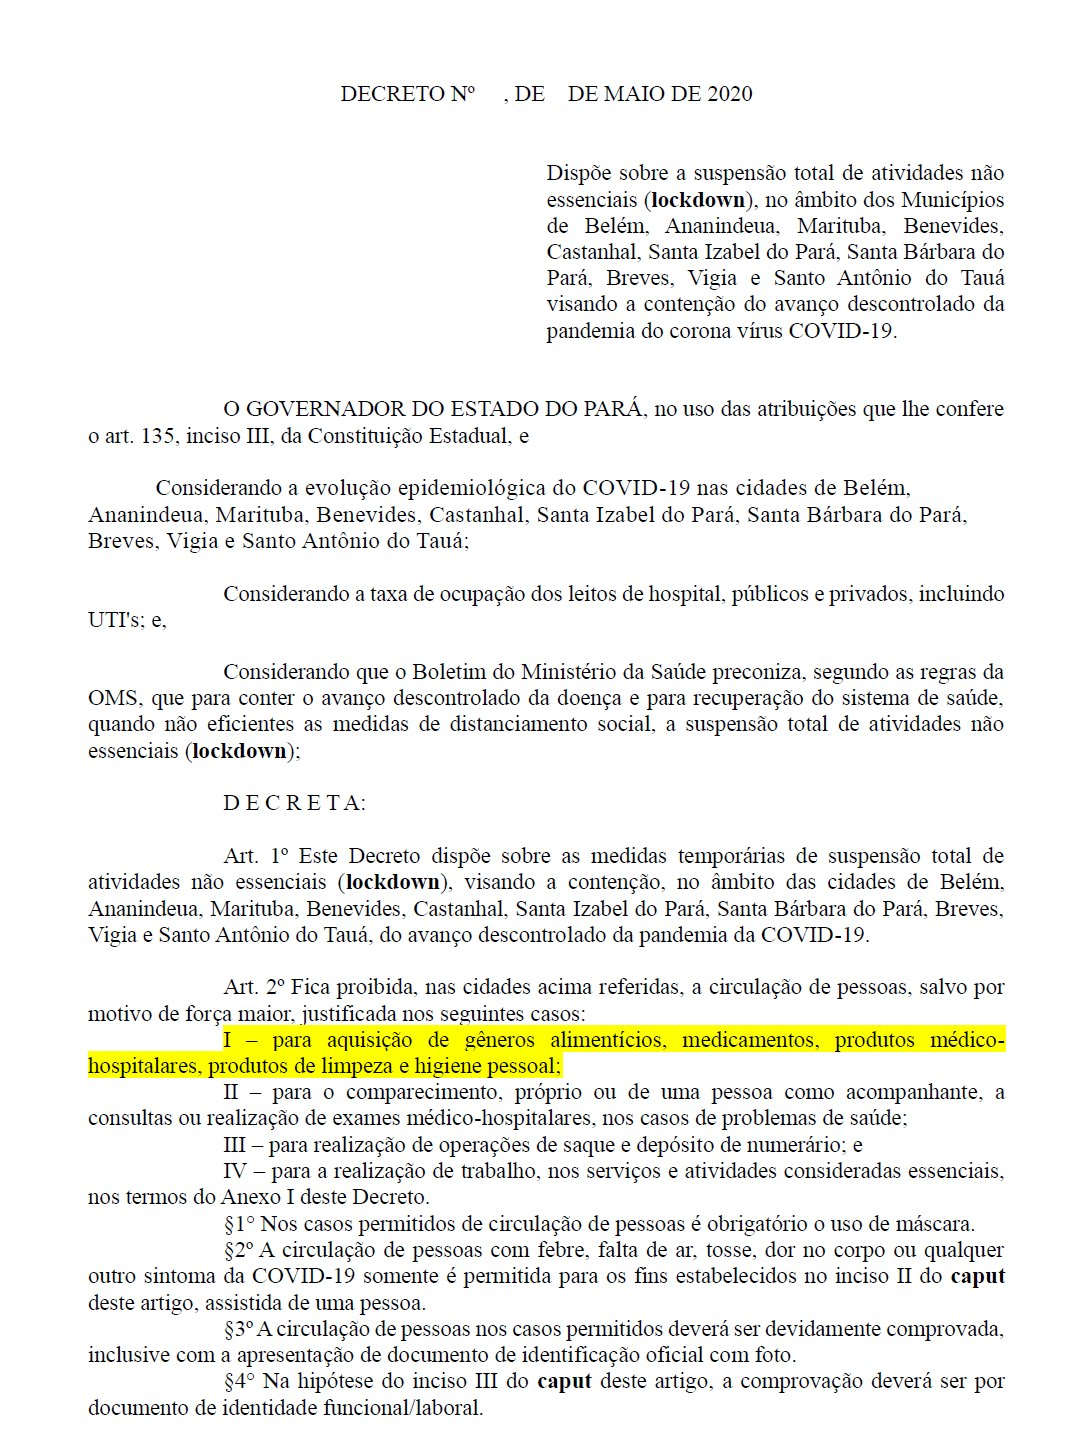 o decreto do governador